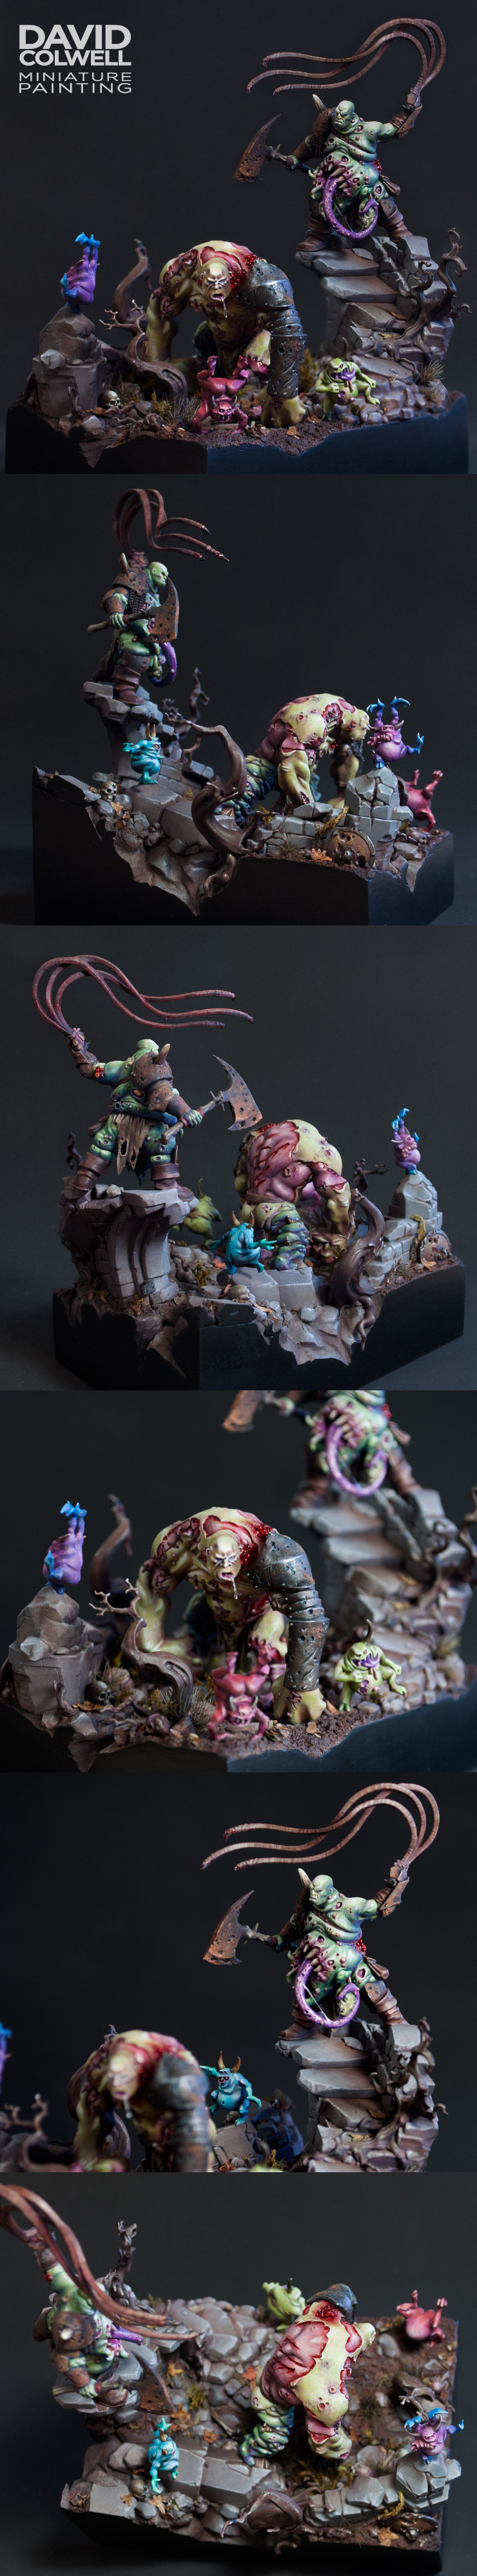 Nurgle Invades the Empire